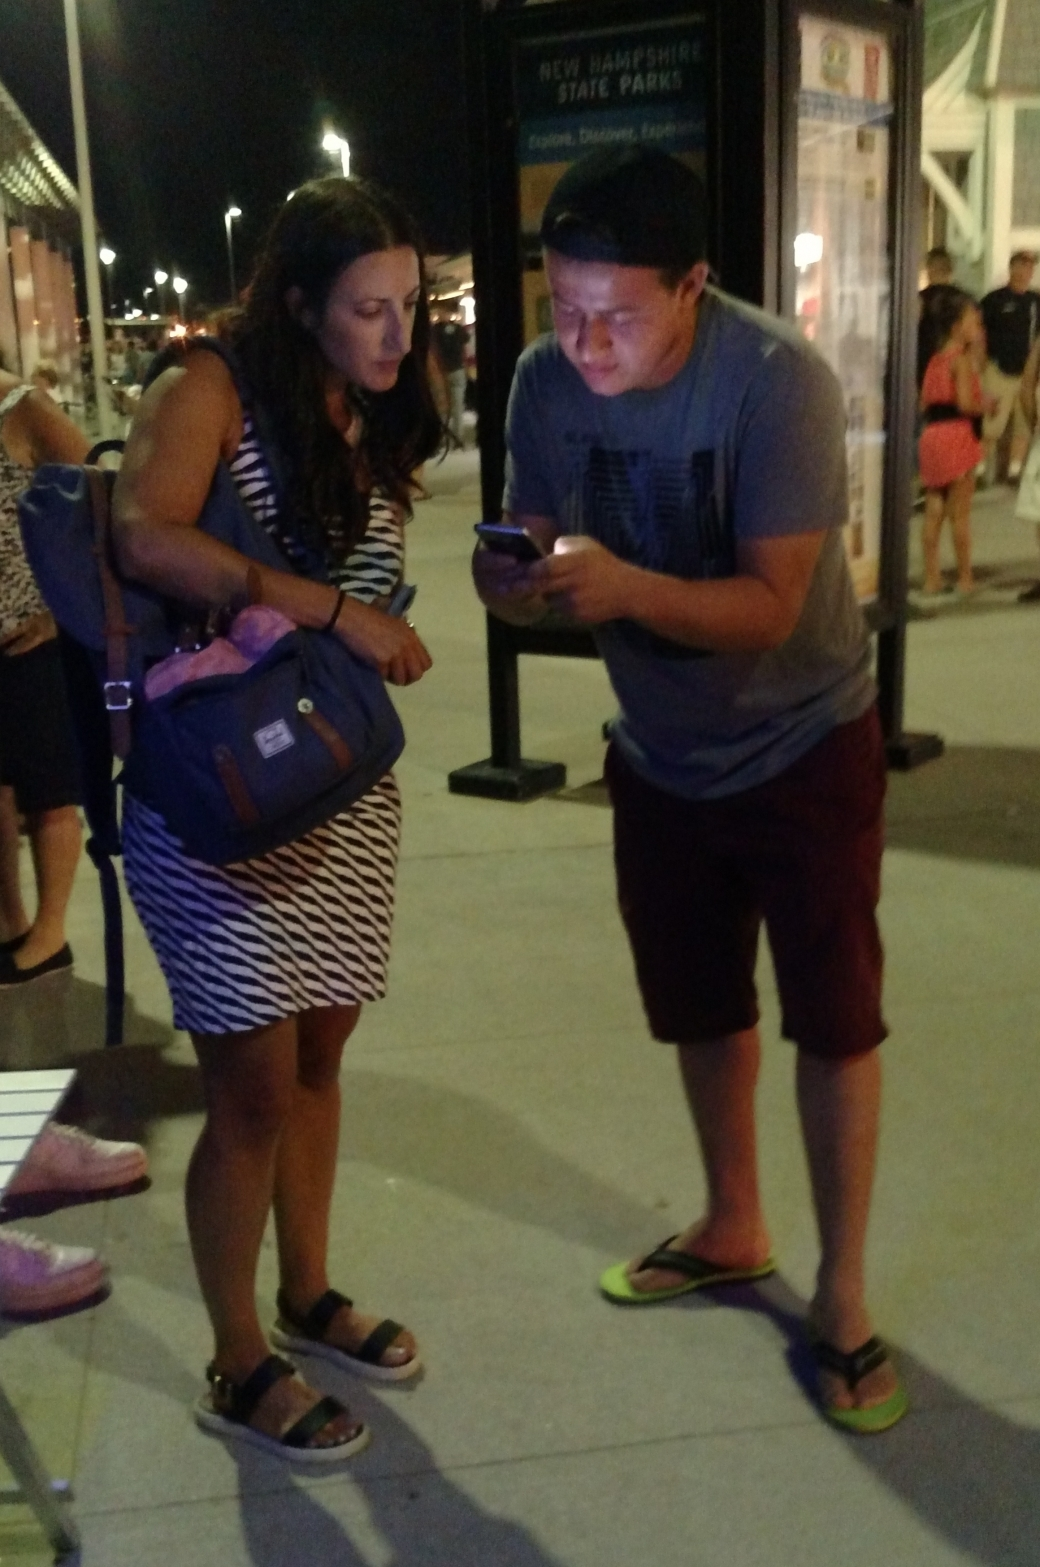 Nadia did such a good job that this man wanted to look up Scripture on the spot on his phone!